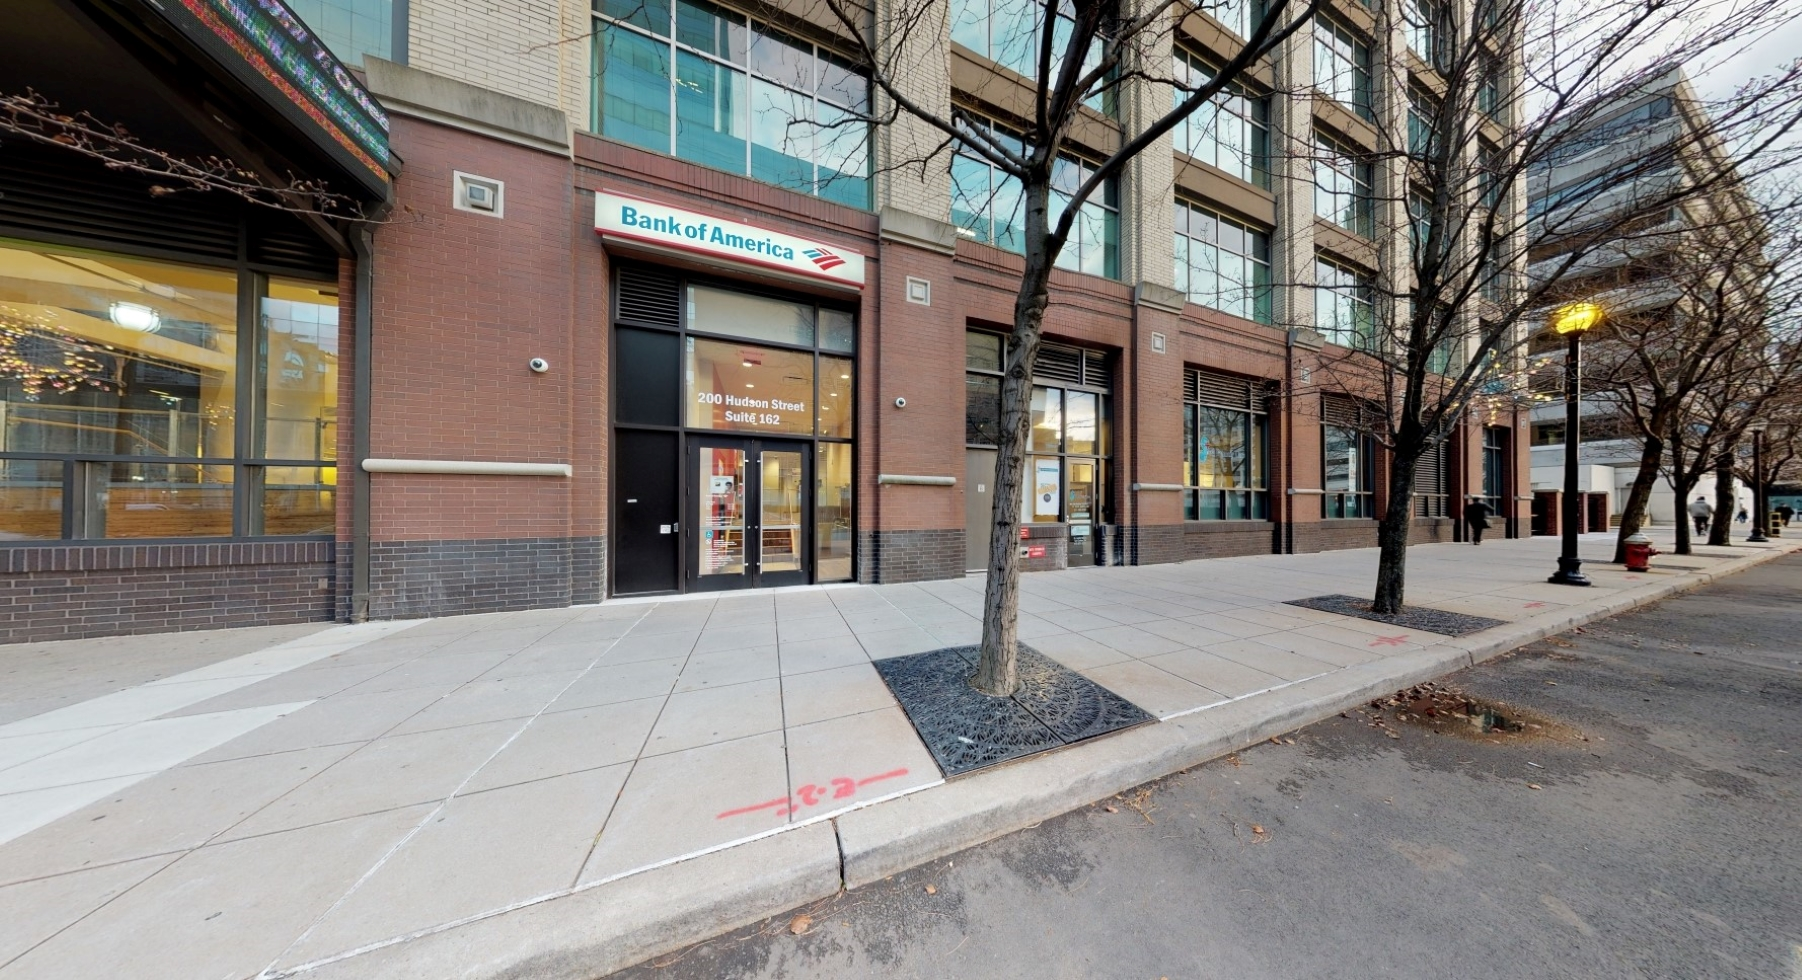 Bank of America financial center with walk-up ATM   200 Hudson St STE 162, Jersey City, NJ 07311